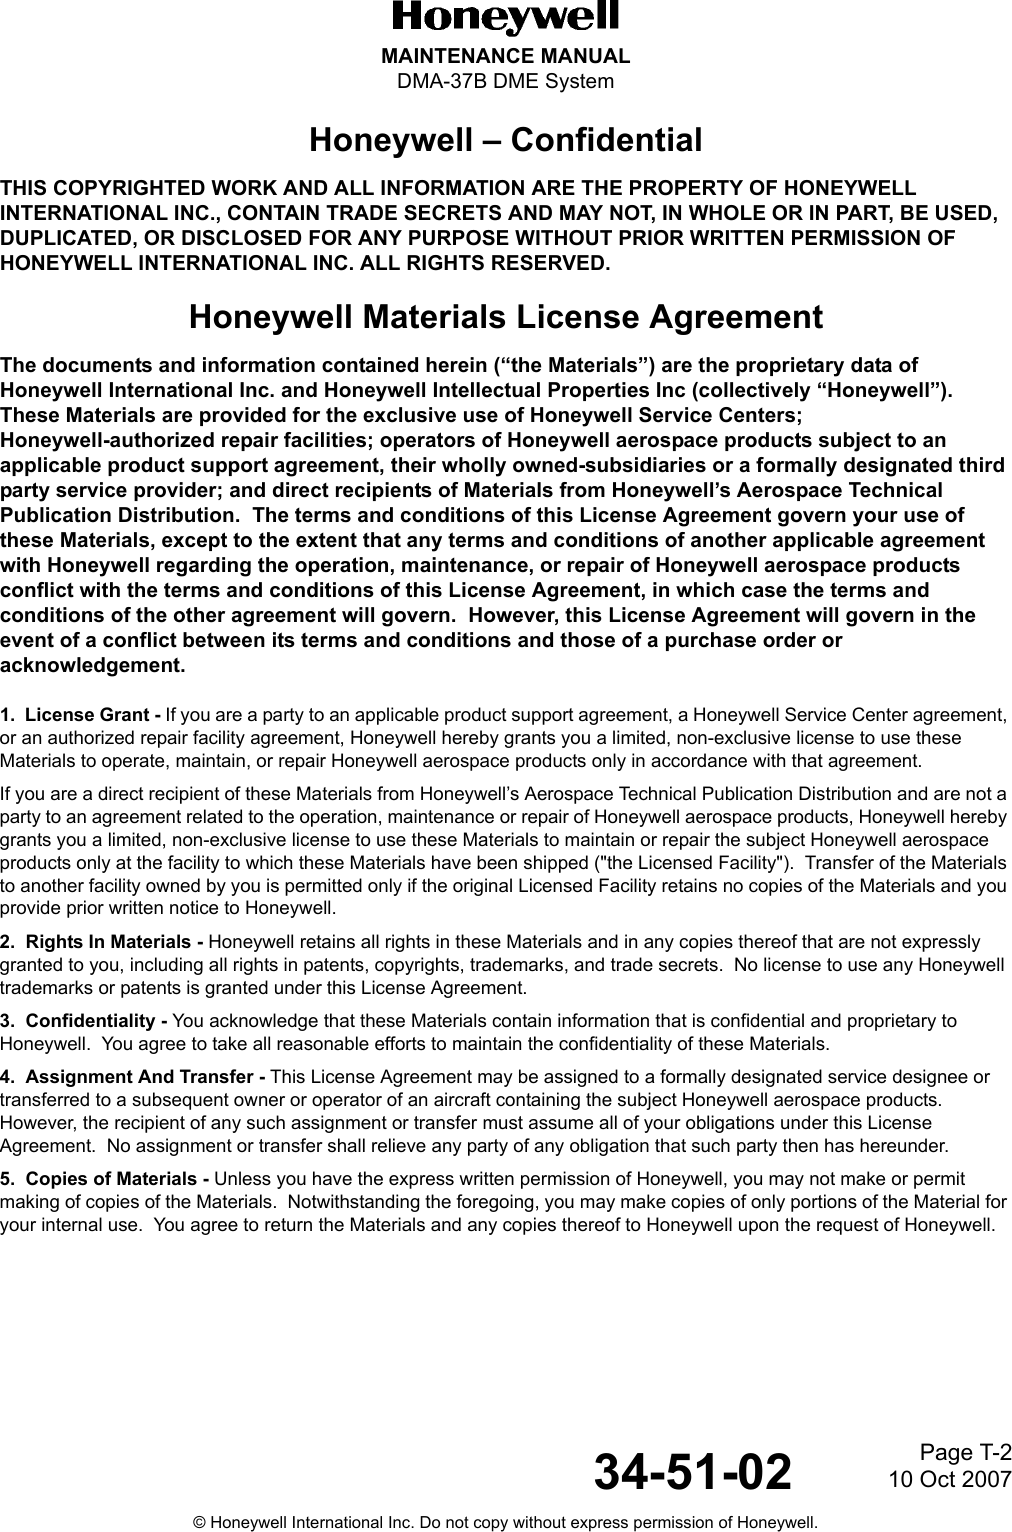 Material Transfer Agreement Template